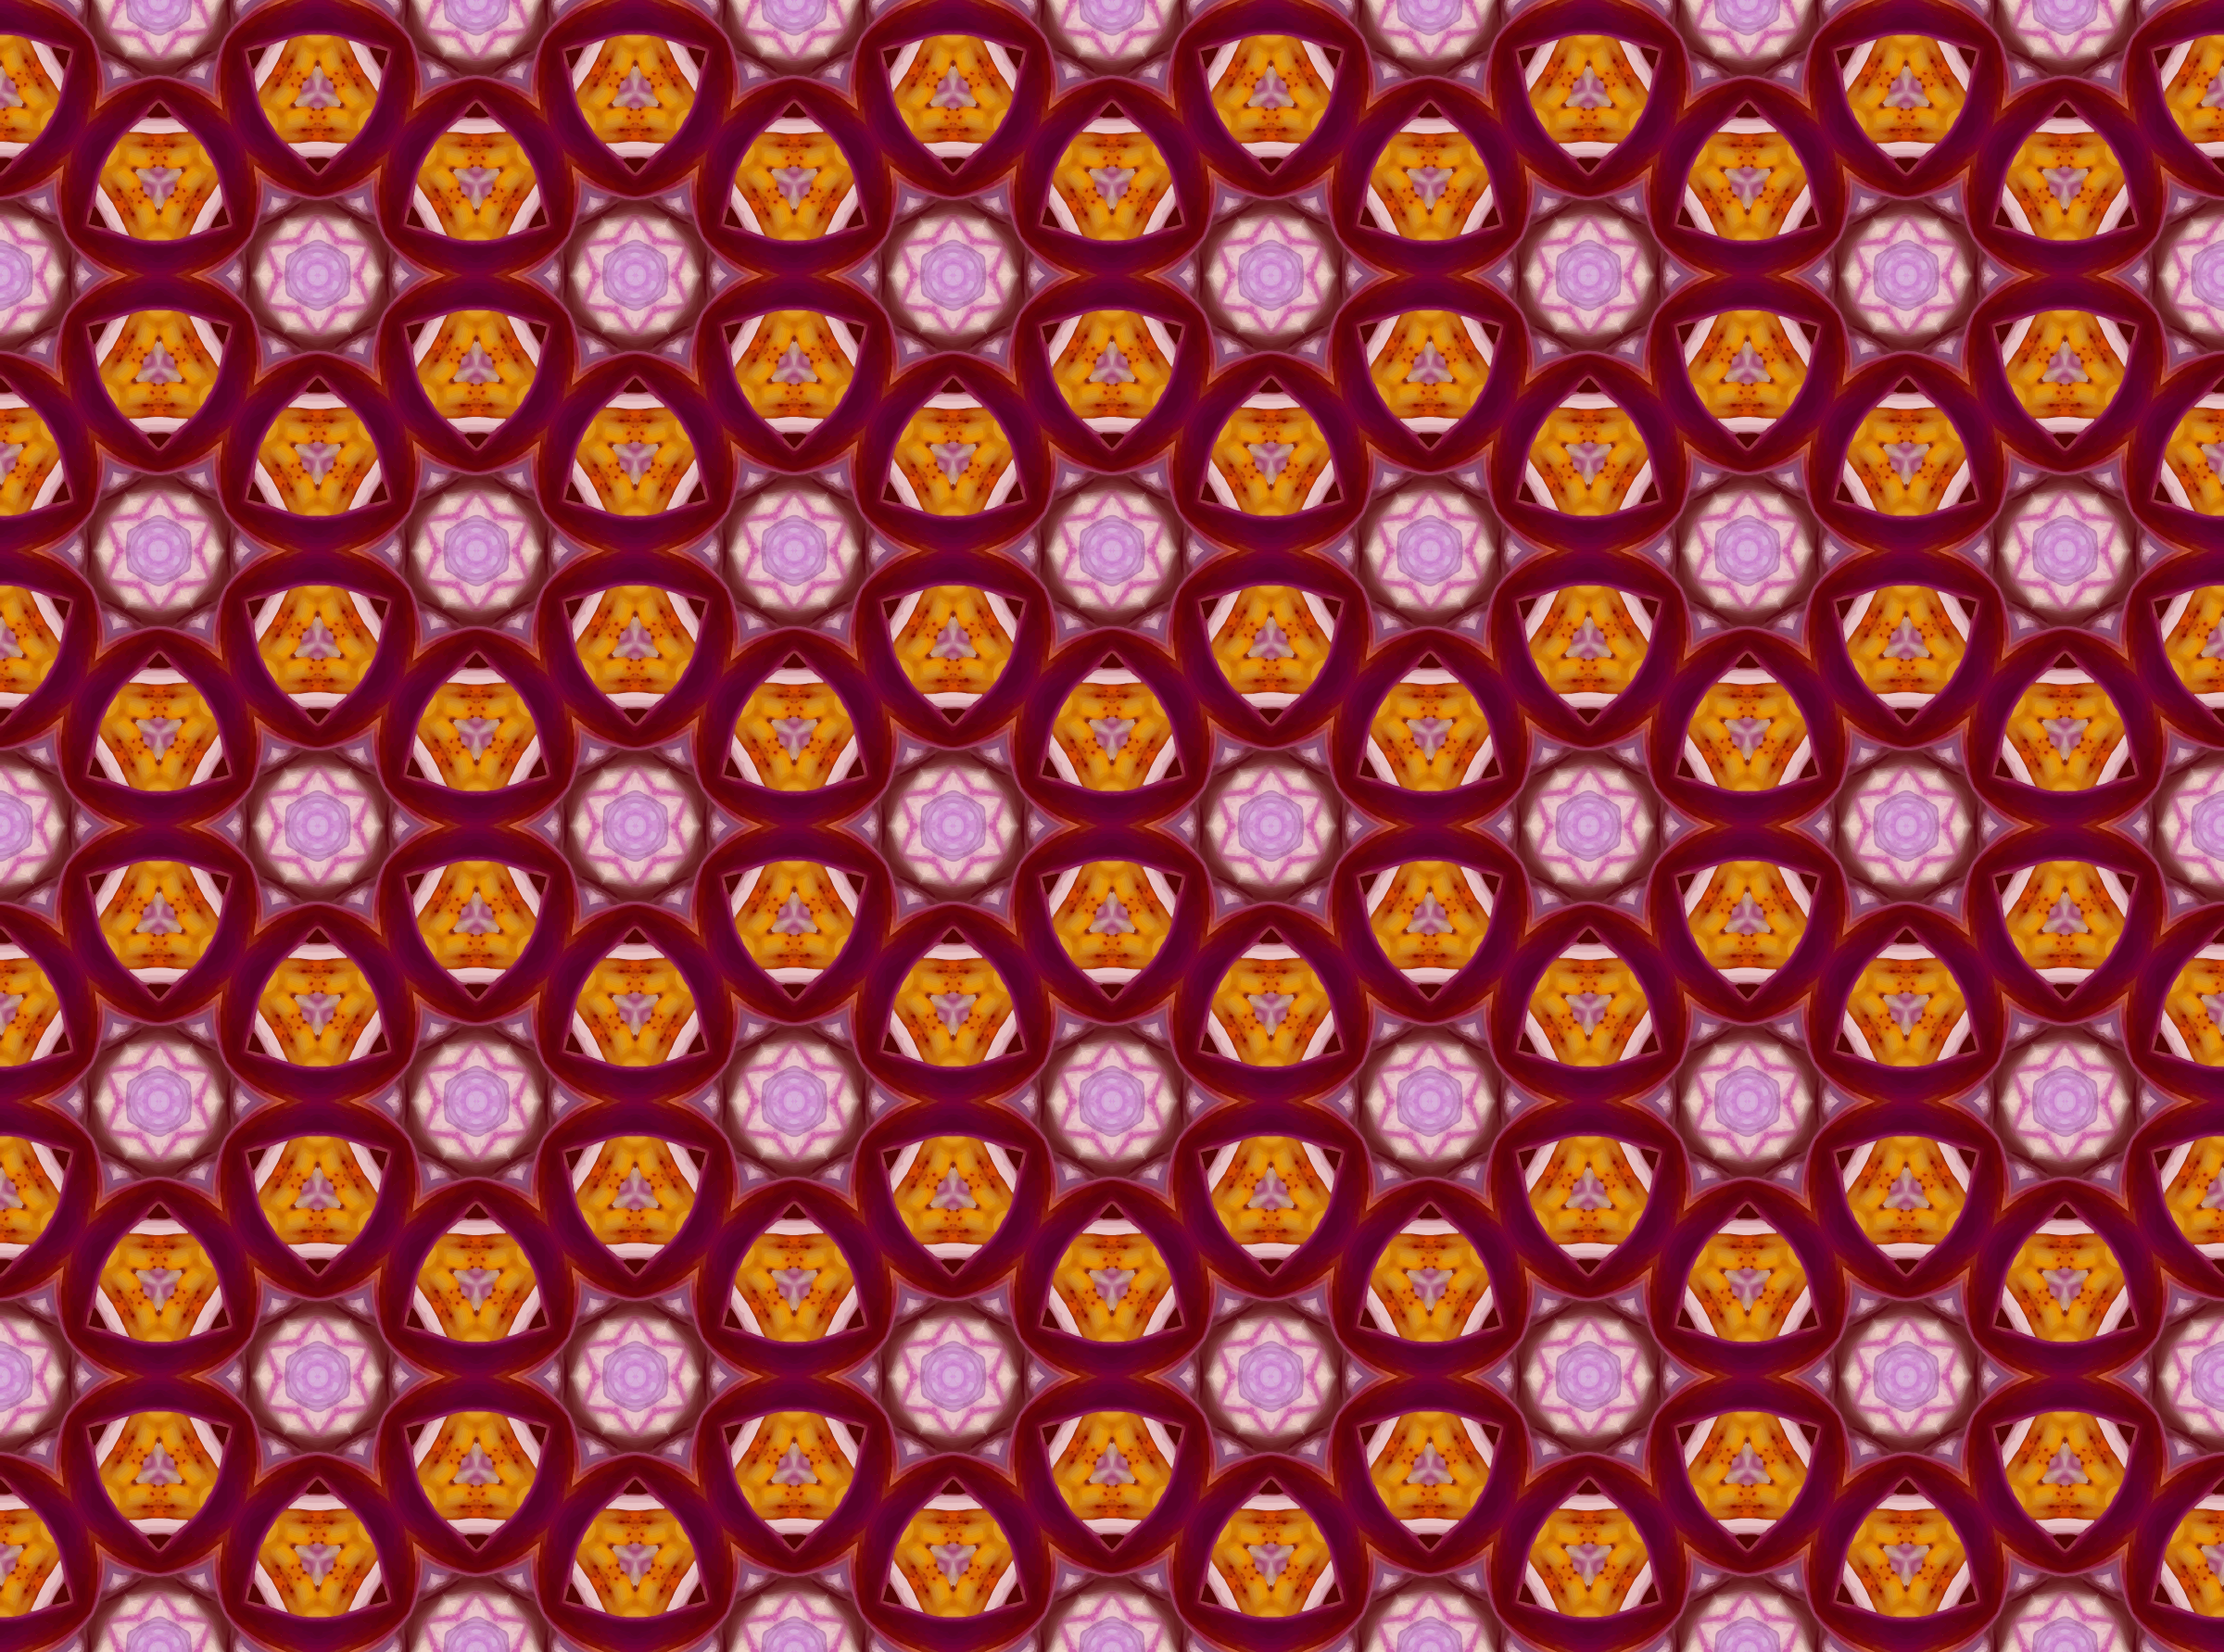 Background pattern 103 by Firkin